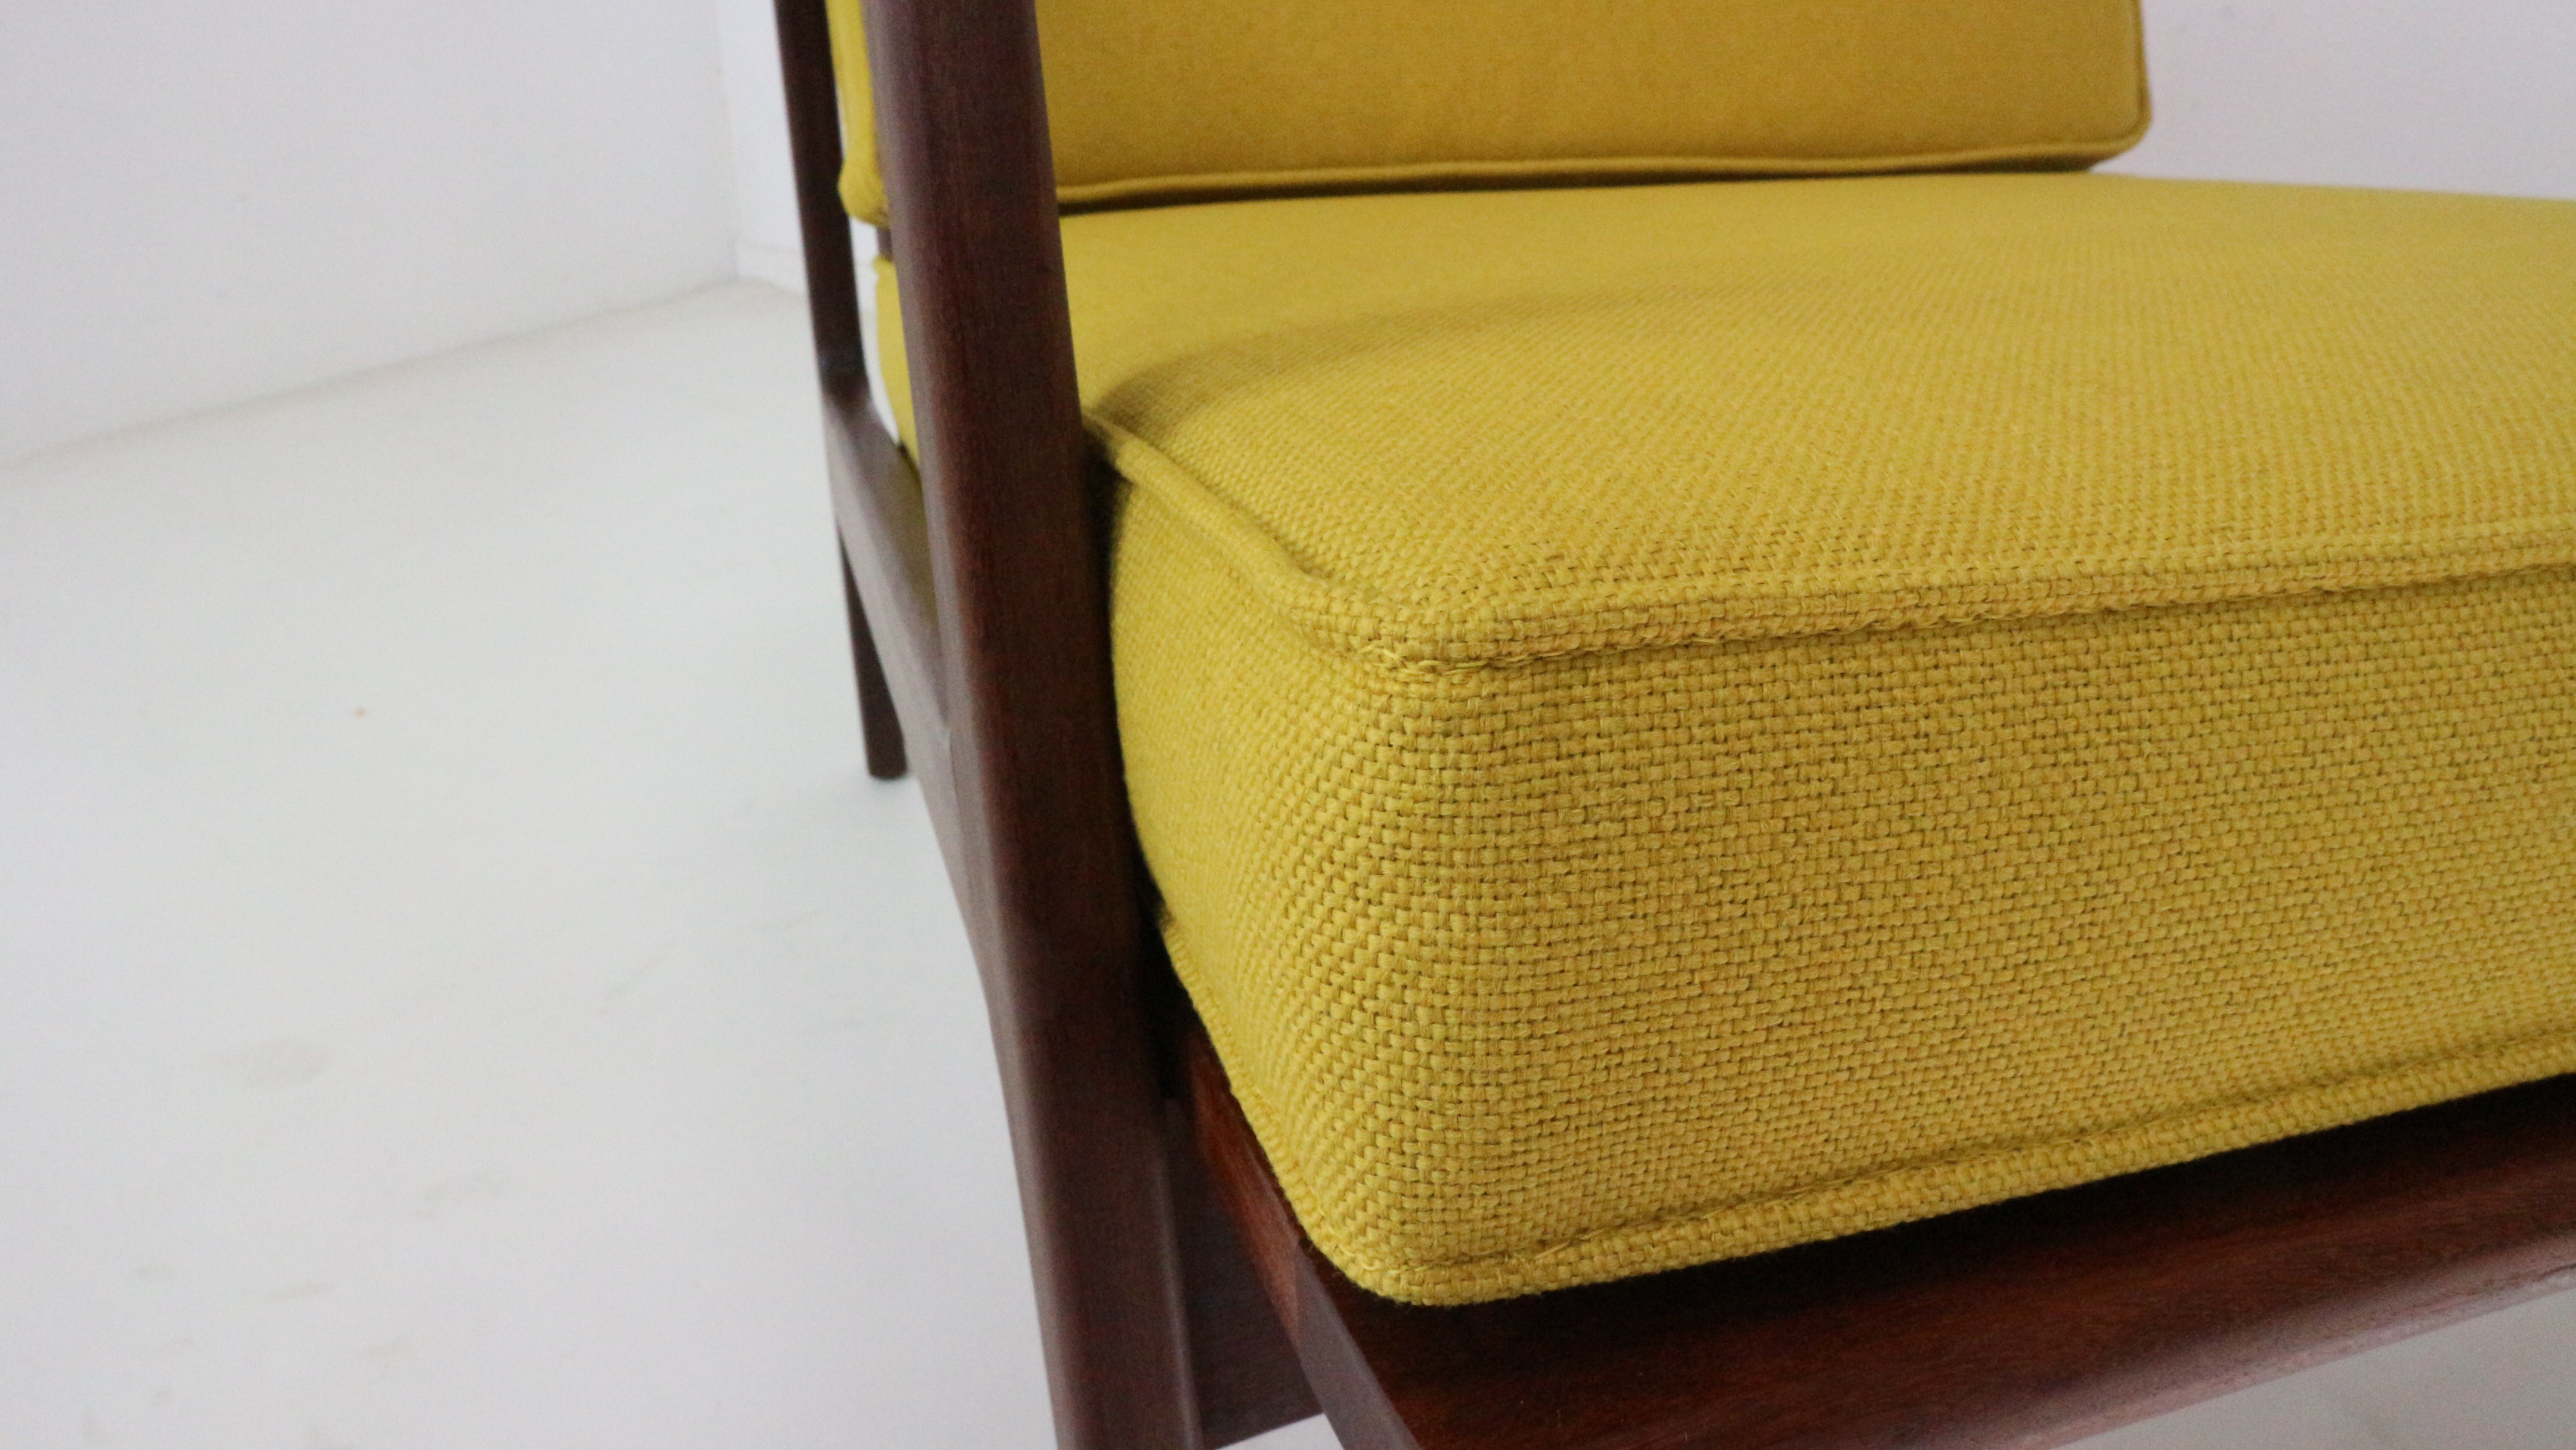 Modernist Danish Teak Armchair Newly Upholstered In Mustard Yellow   1960s.  Previous Next